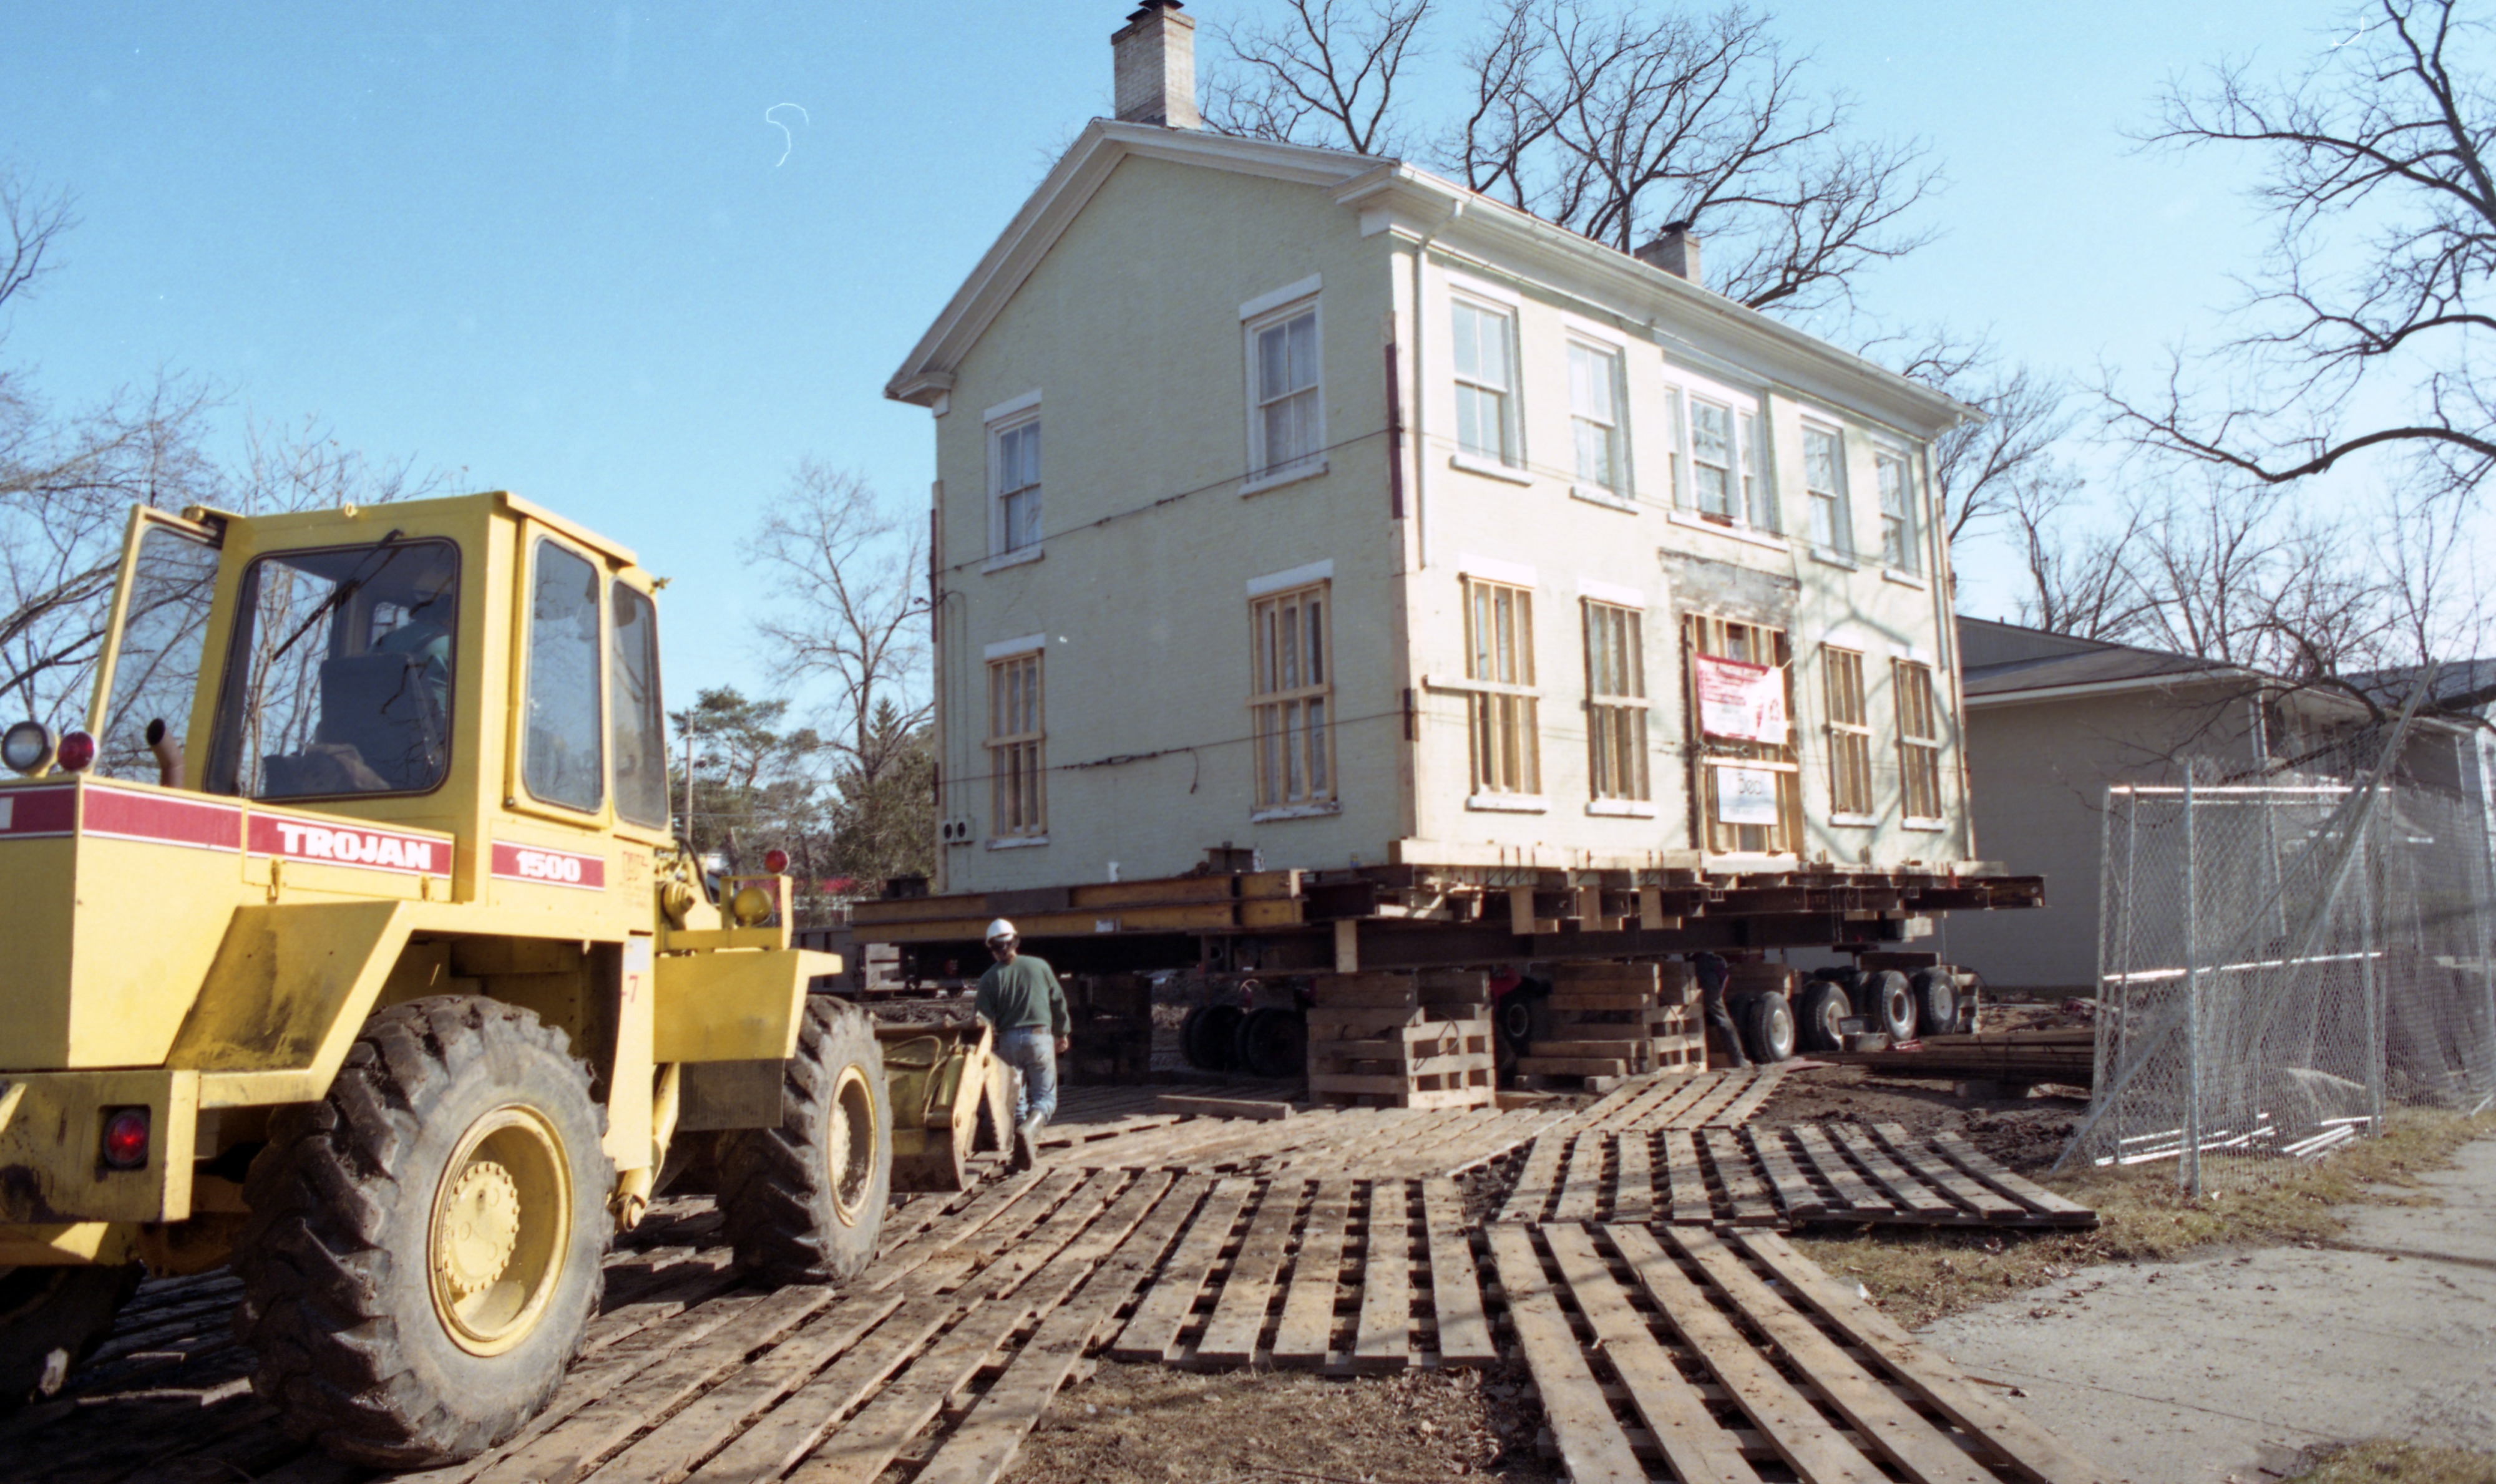 Workers Prepare The Nathan Burnham House For Its Move, February 1998 image